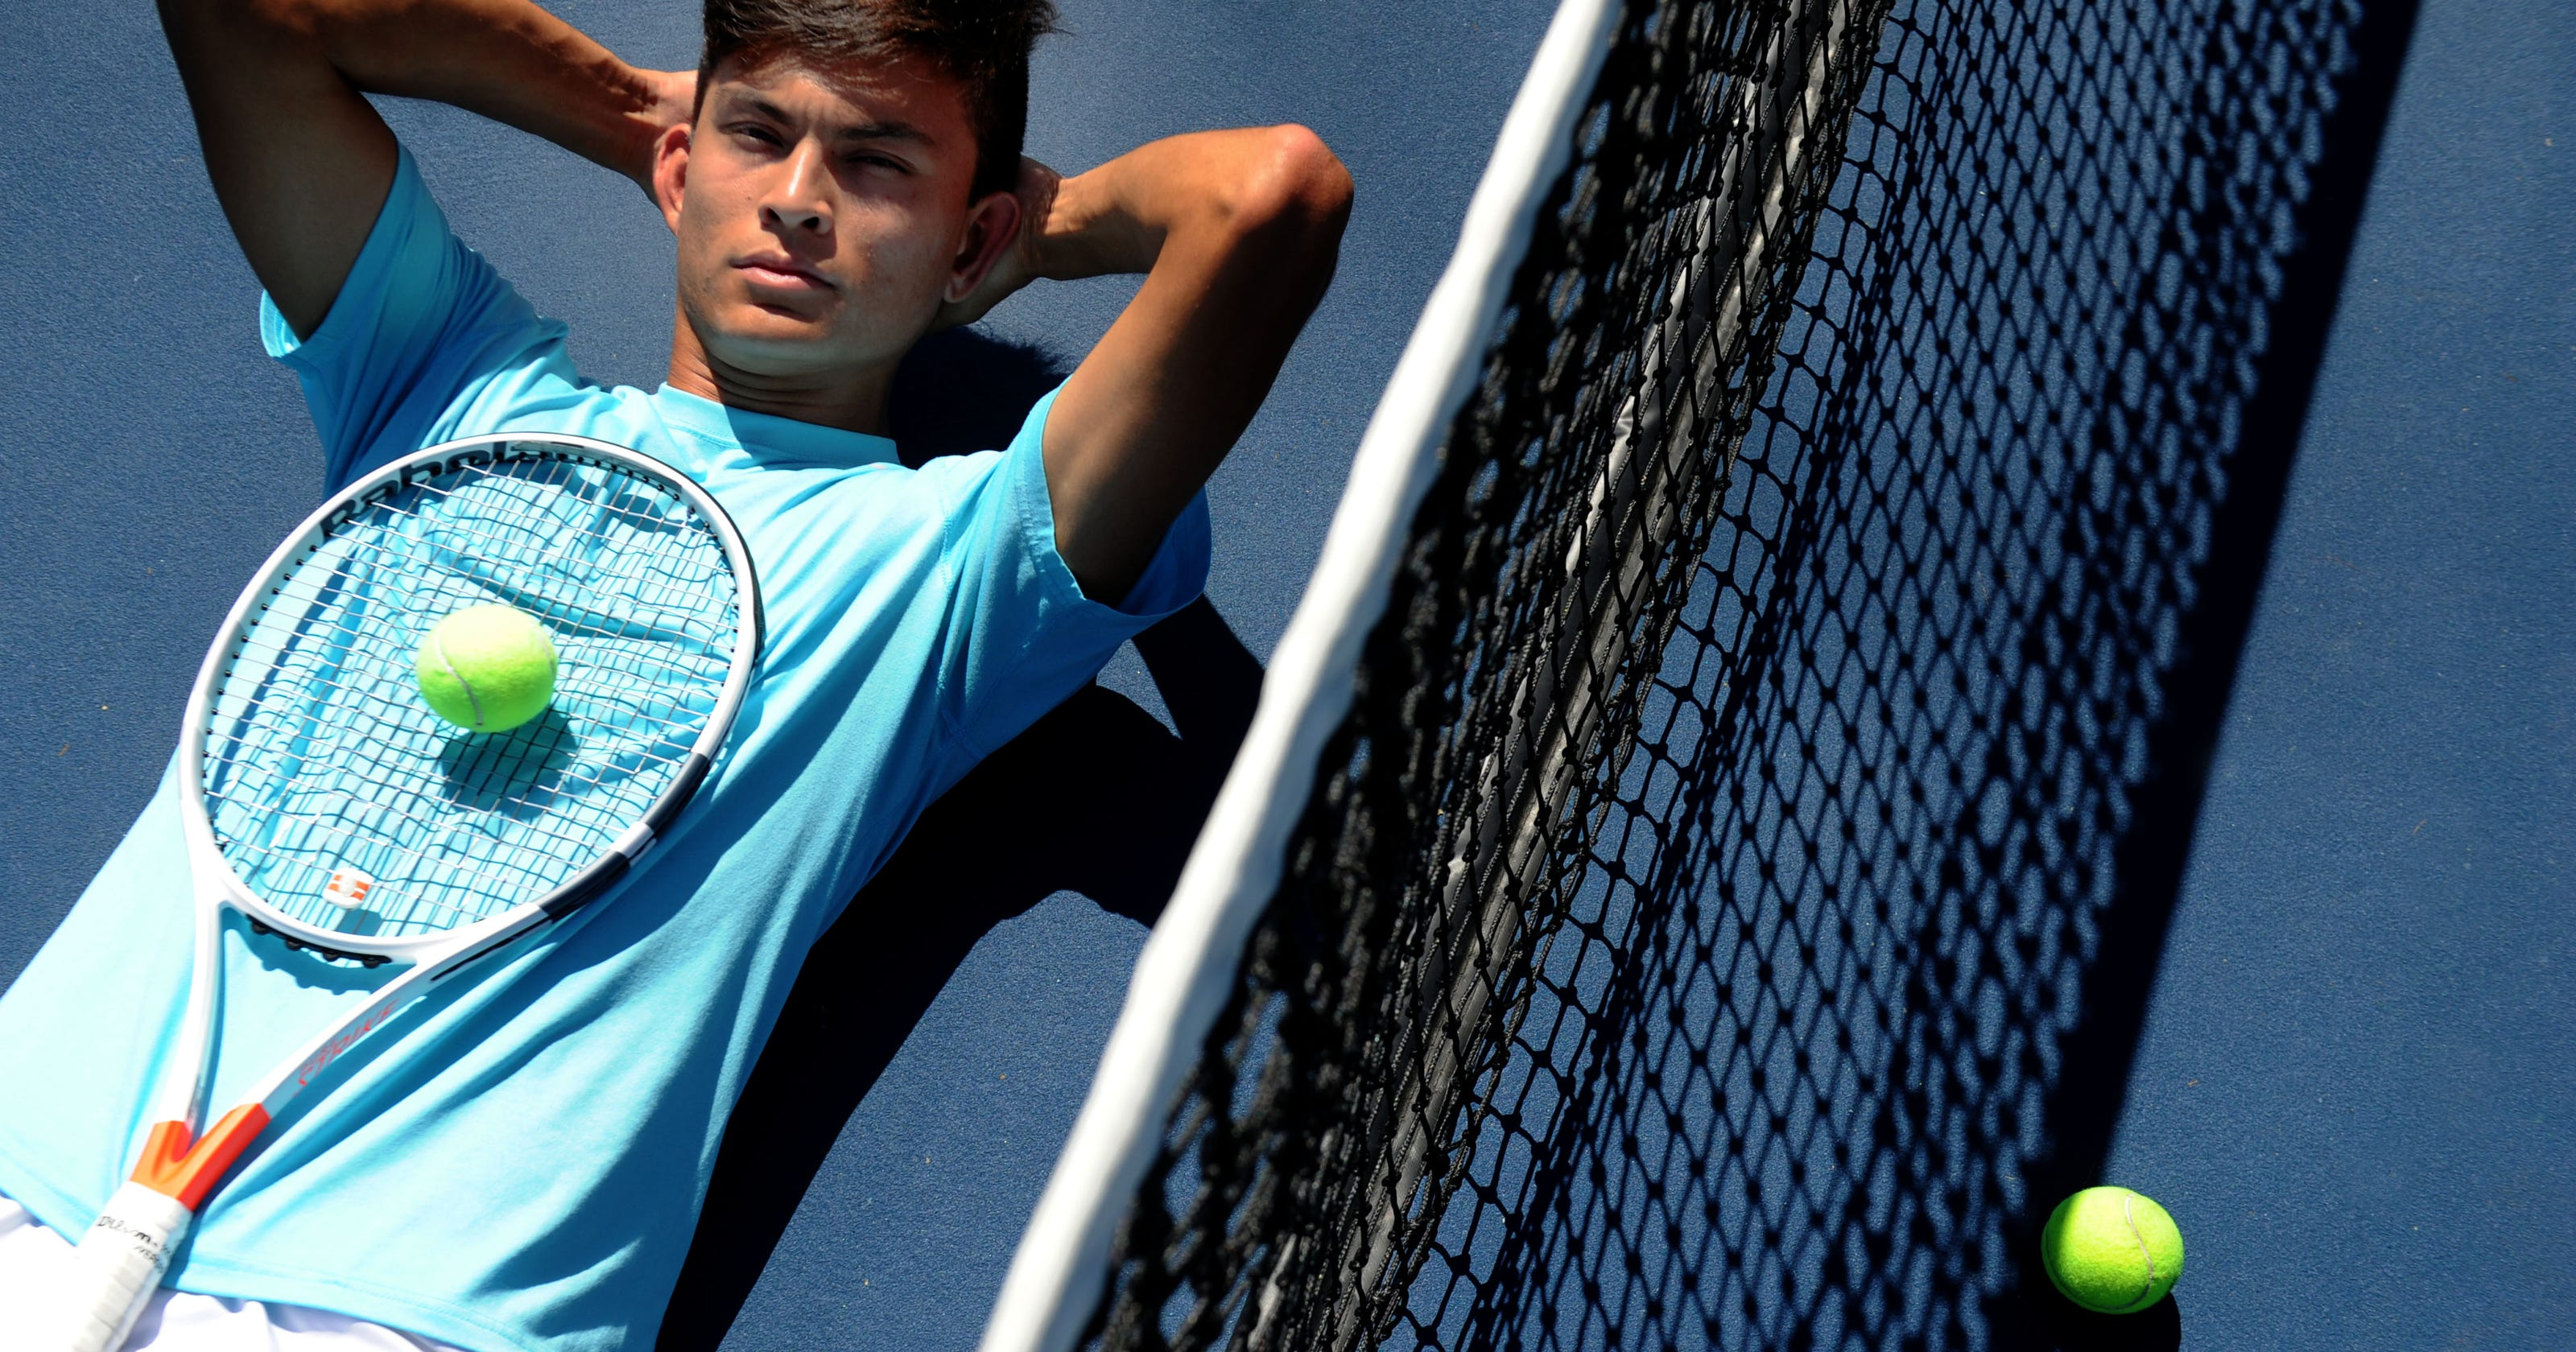 a34a6f03a Brandon Lam is The Star's Boys Tennis Player of the Year